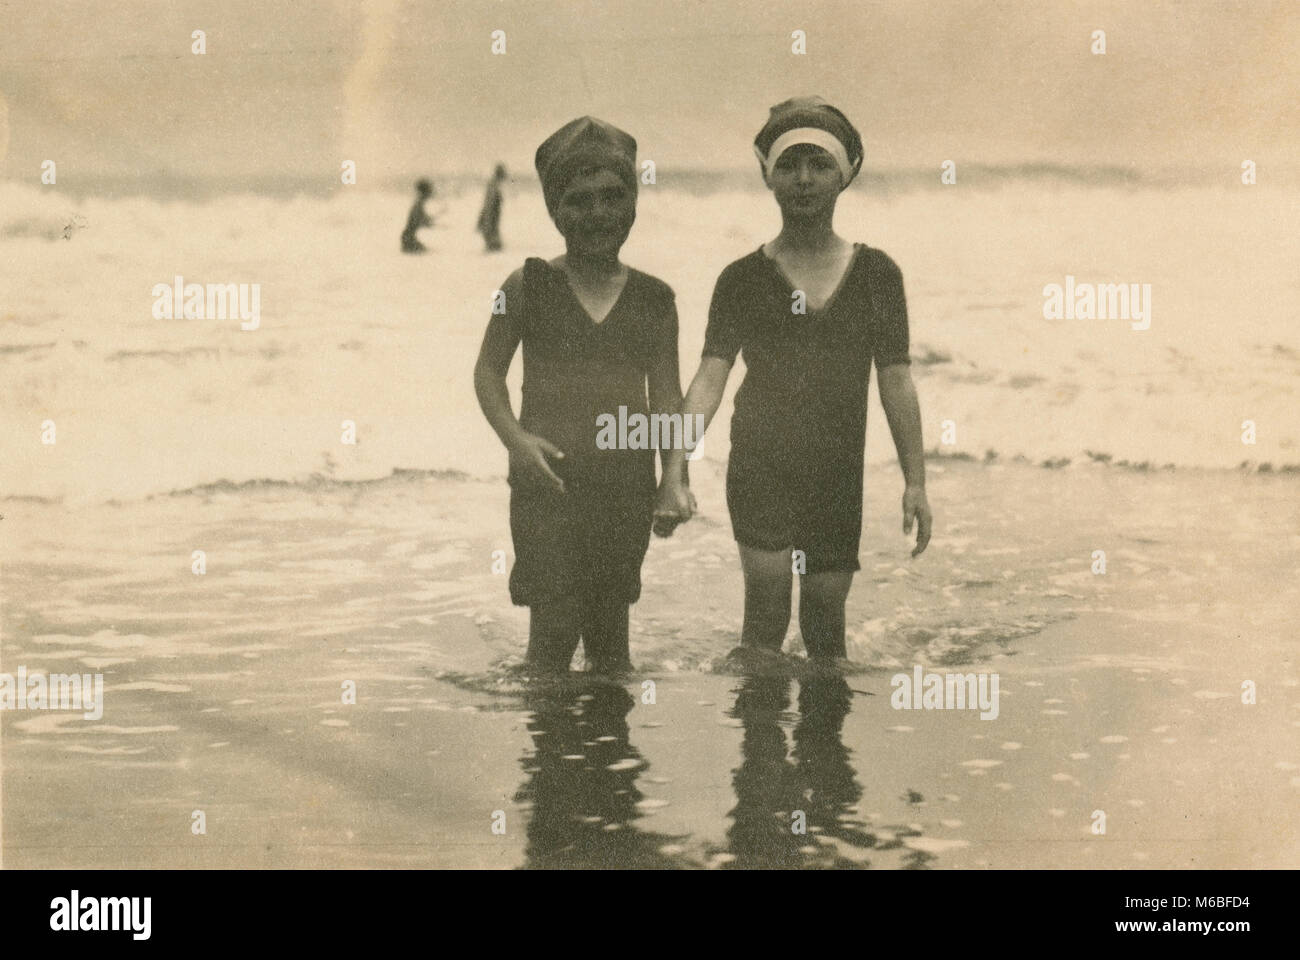 Antique c1900 photograph, two young children in Victorian bathing suits at the ocean. Location unknown, probably Stock Photo